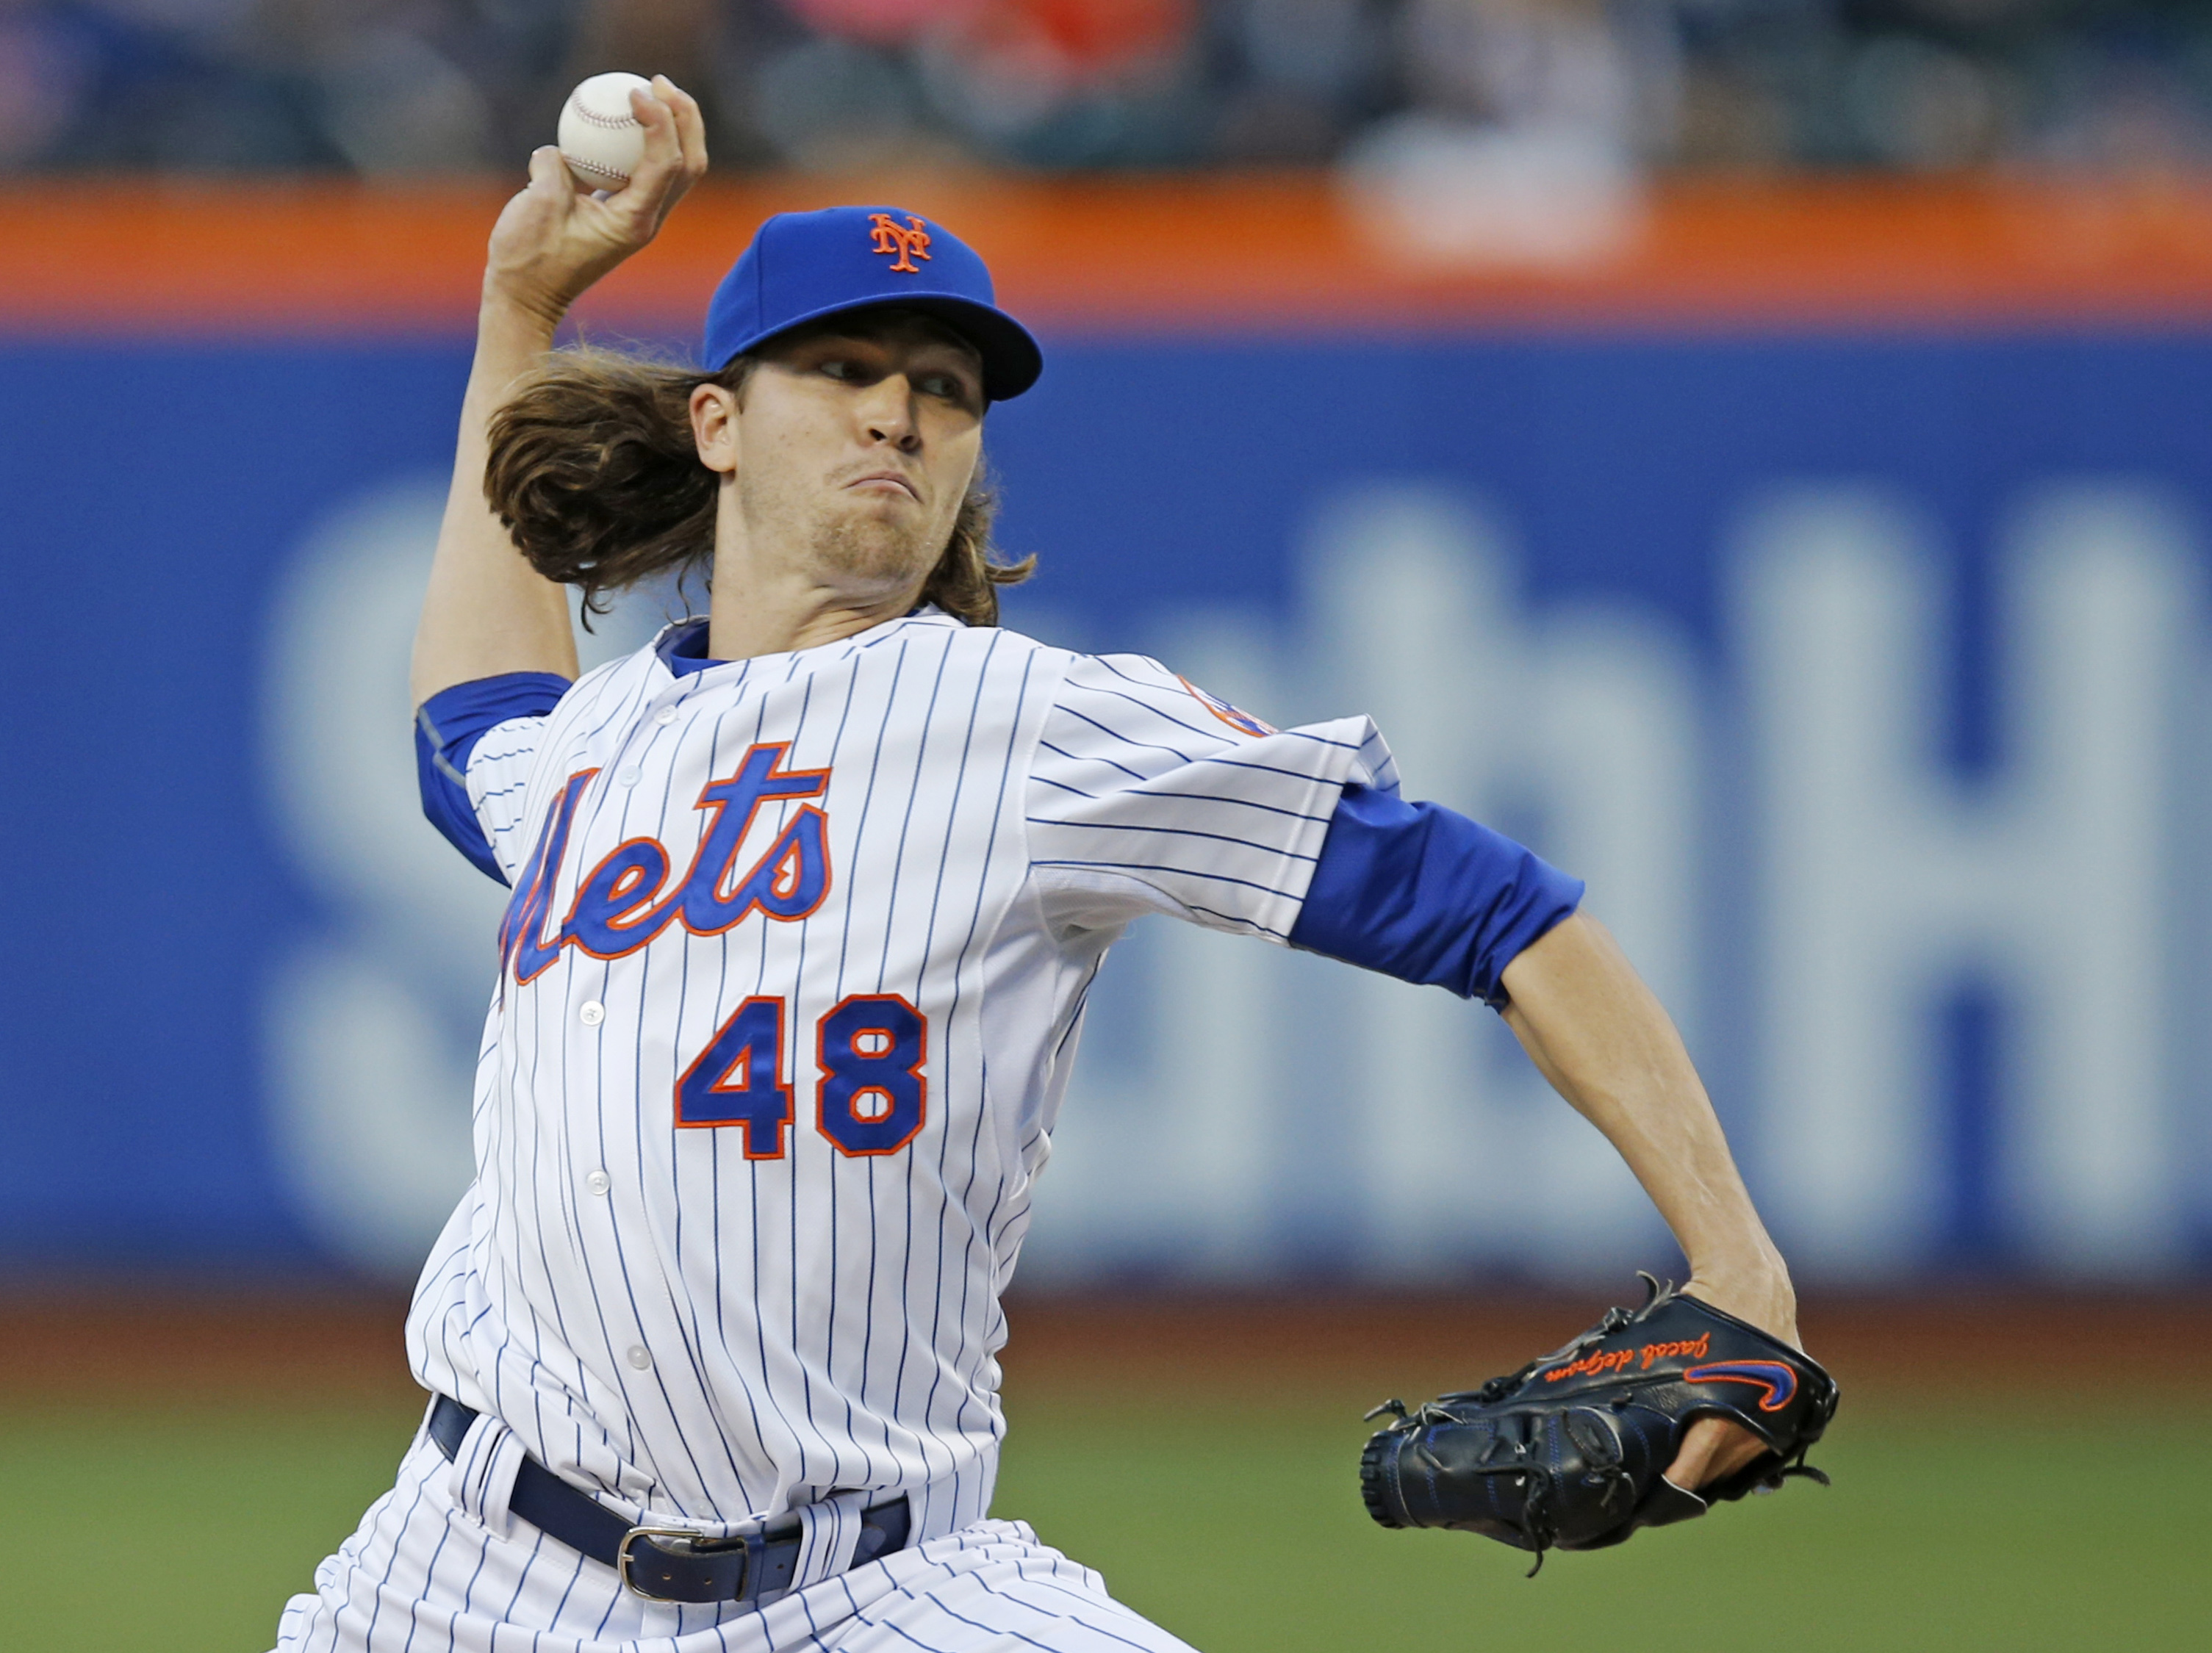 New York Mets starting pitcher Jacob deGrom delivers in the first inning of a baseball game against the Baltimore Orioles, Wednesday, May 6, 2015, in New York. (AP Photo/Kathy Willens)